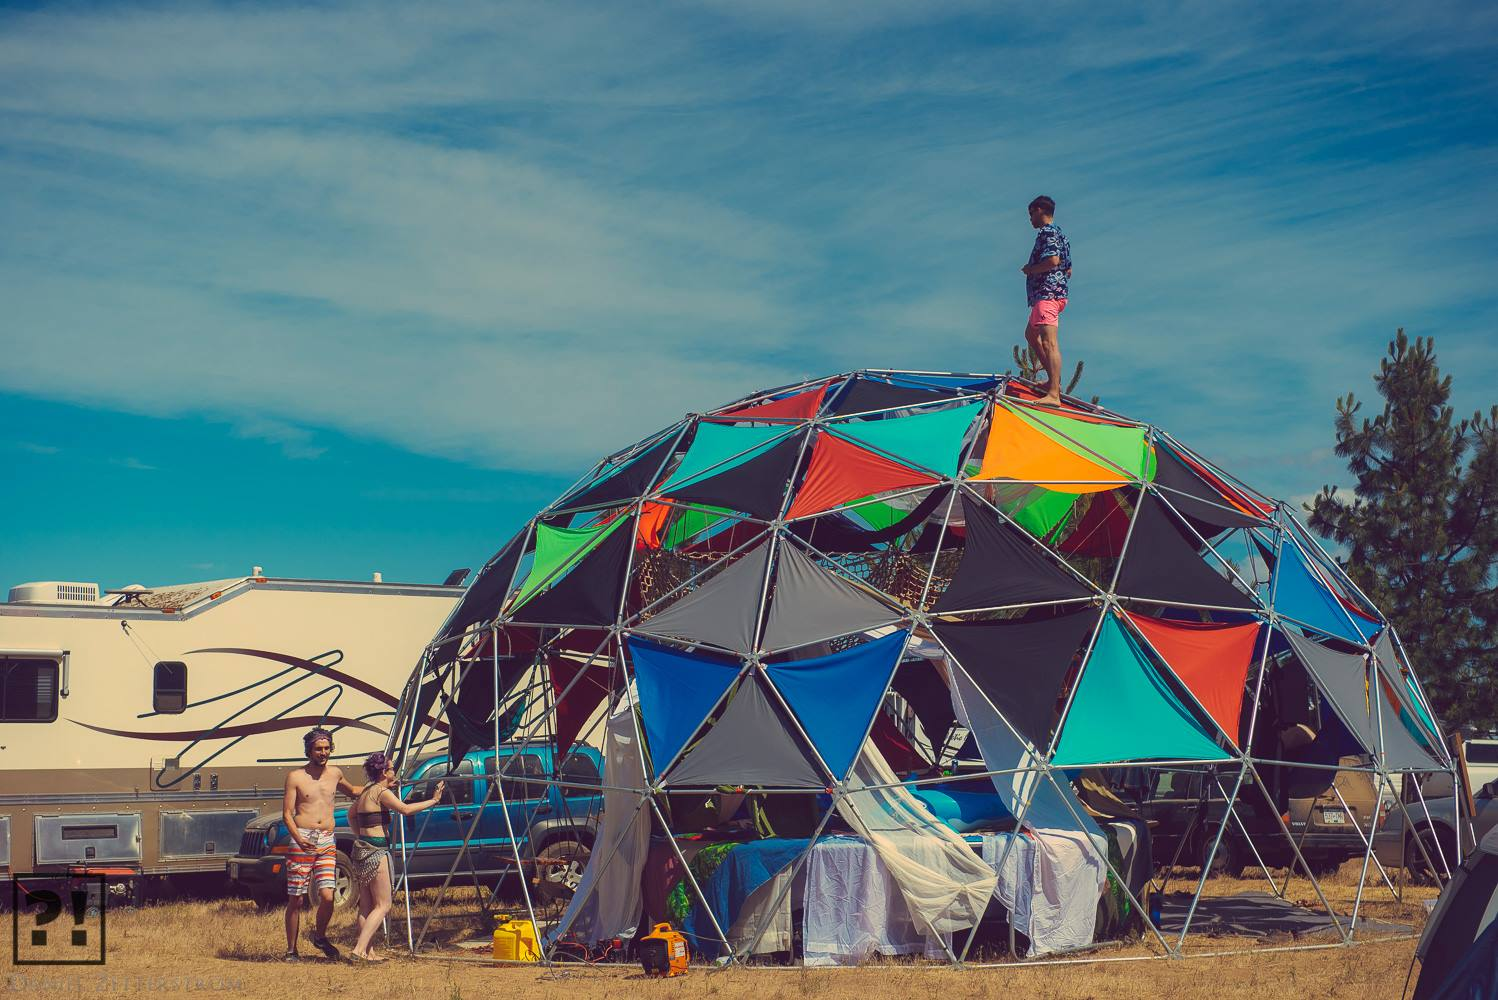 The geodesic dome where we continued the celebrations. Photo credit © Daniel Zetterstrom from WhatTheFestival 2014.